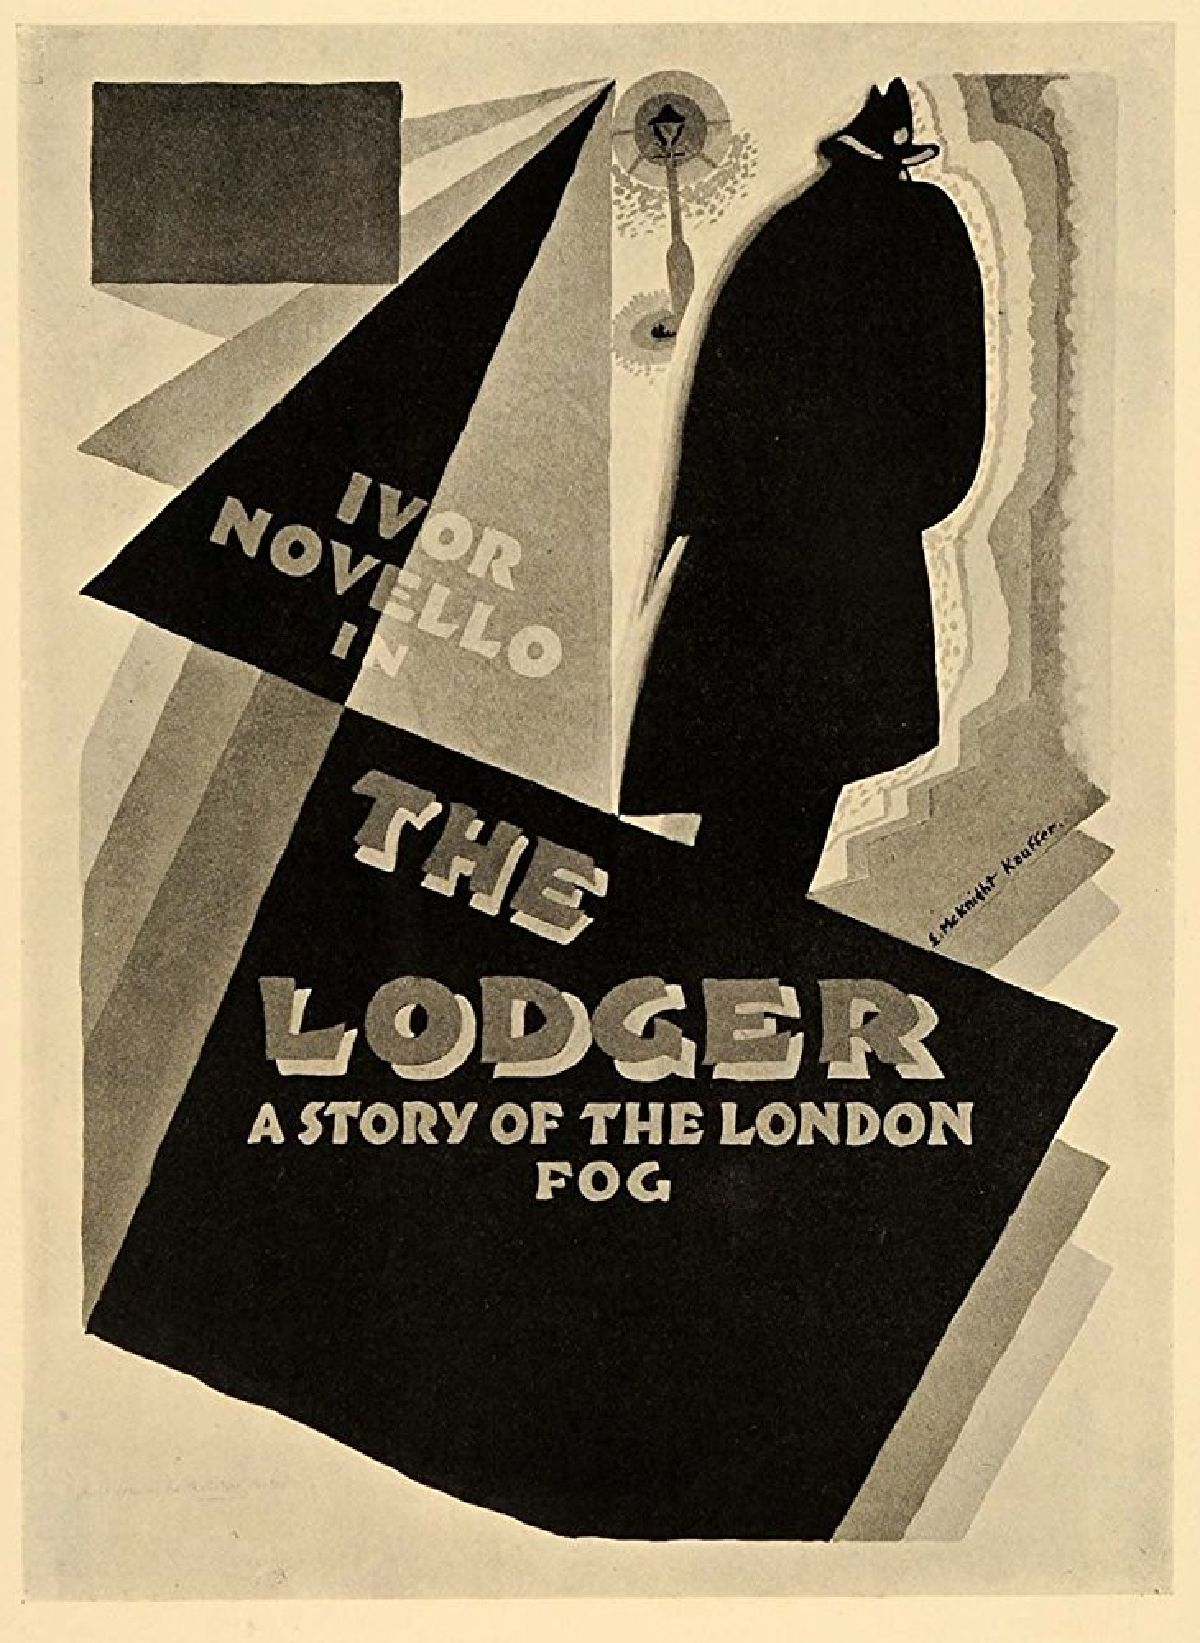 'The Lodger' movie poster